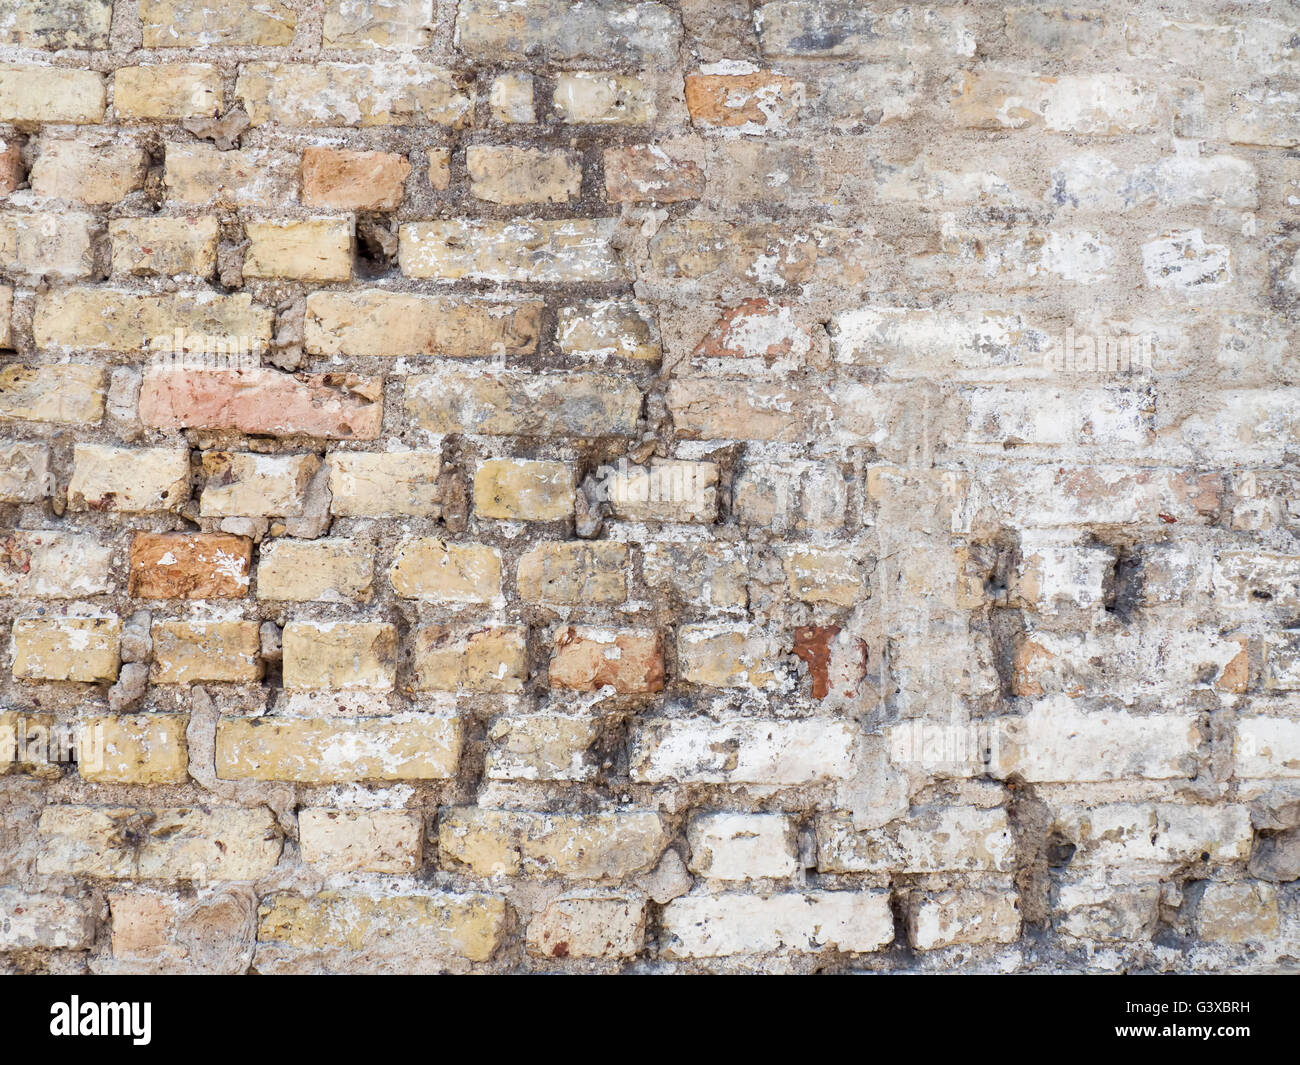 Old Damaged Rustic Brick Wall With Plaster Texture Background